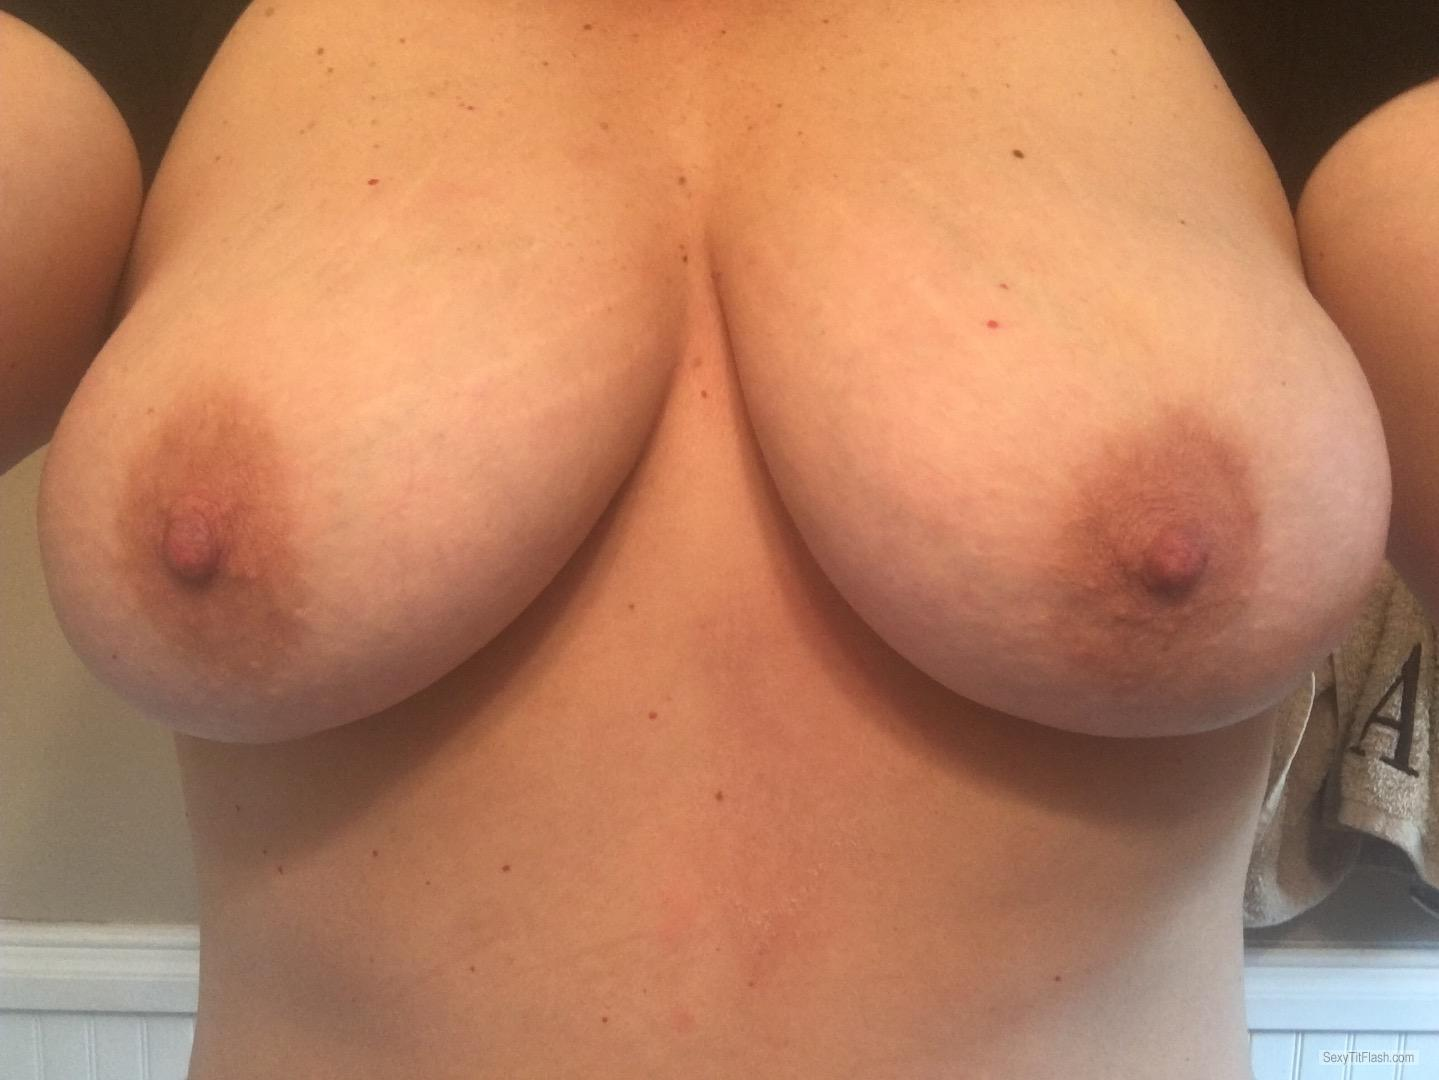 Tit Flash: My Medium Tits (Selfie) - Topless Shannon from United States